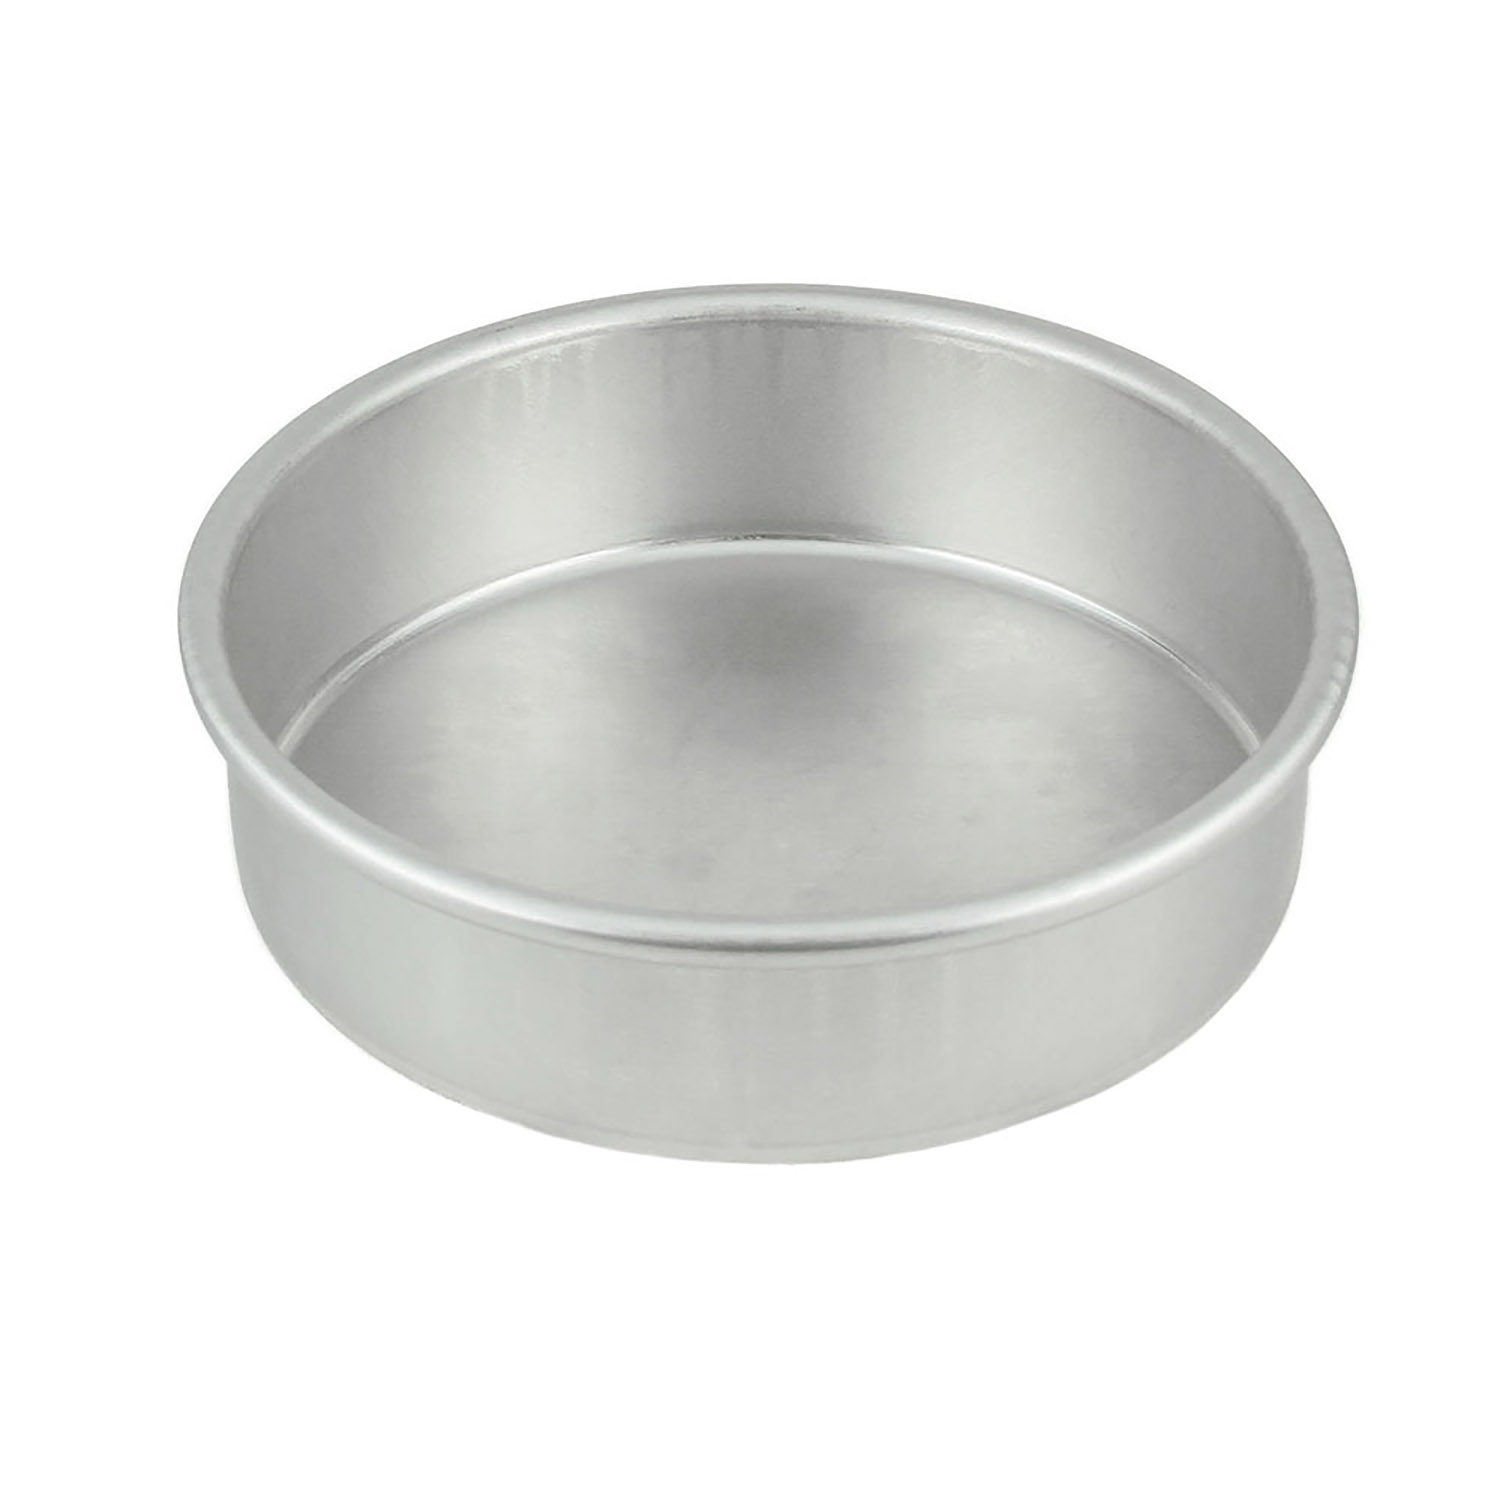 Cake Pans and Bakeware